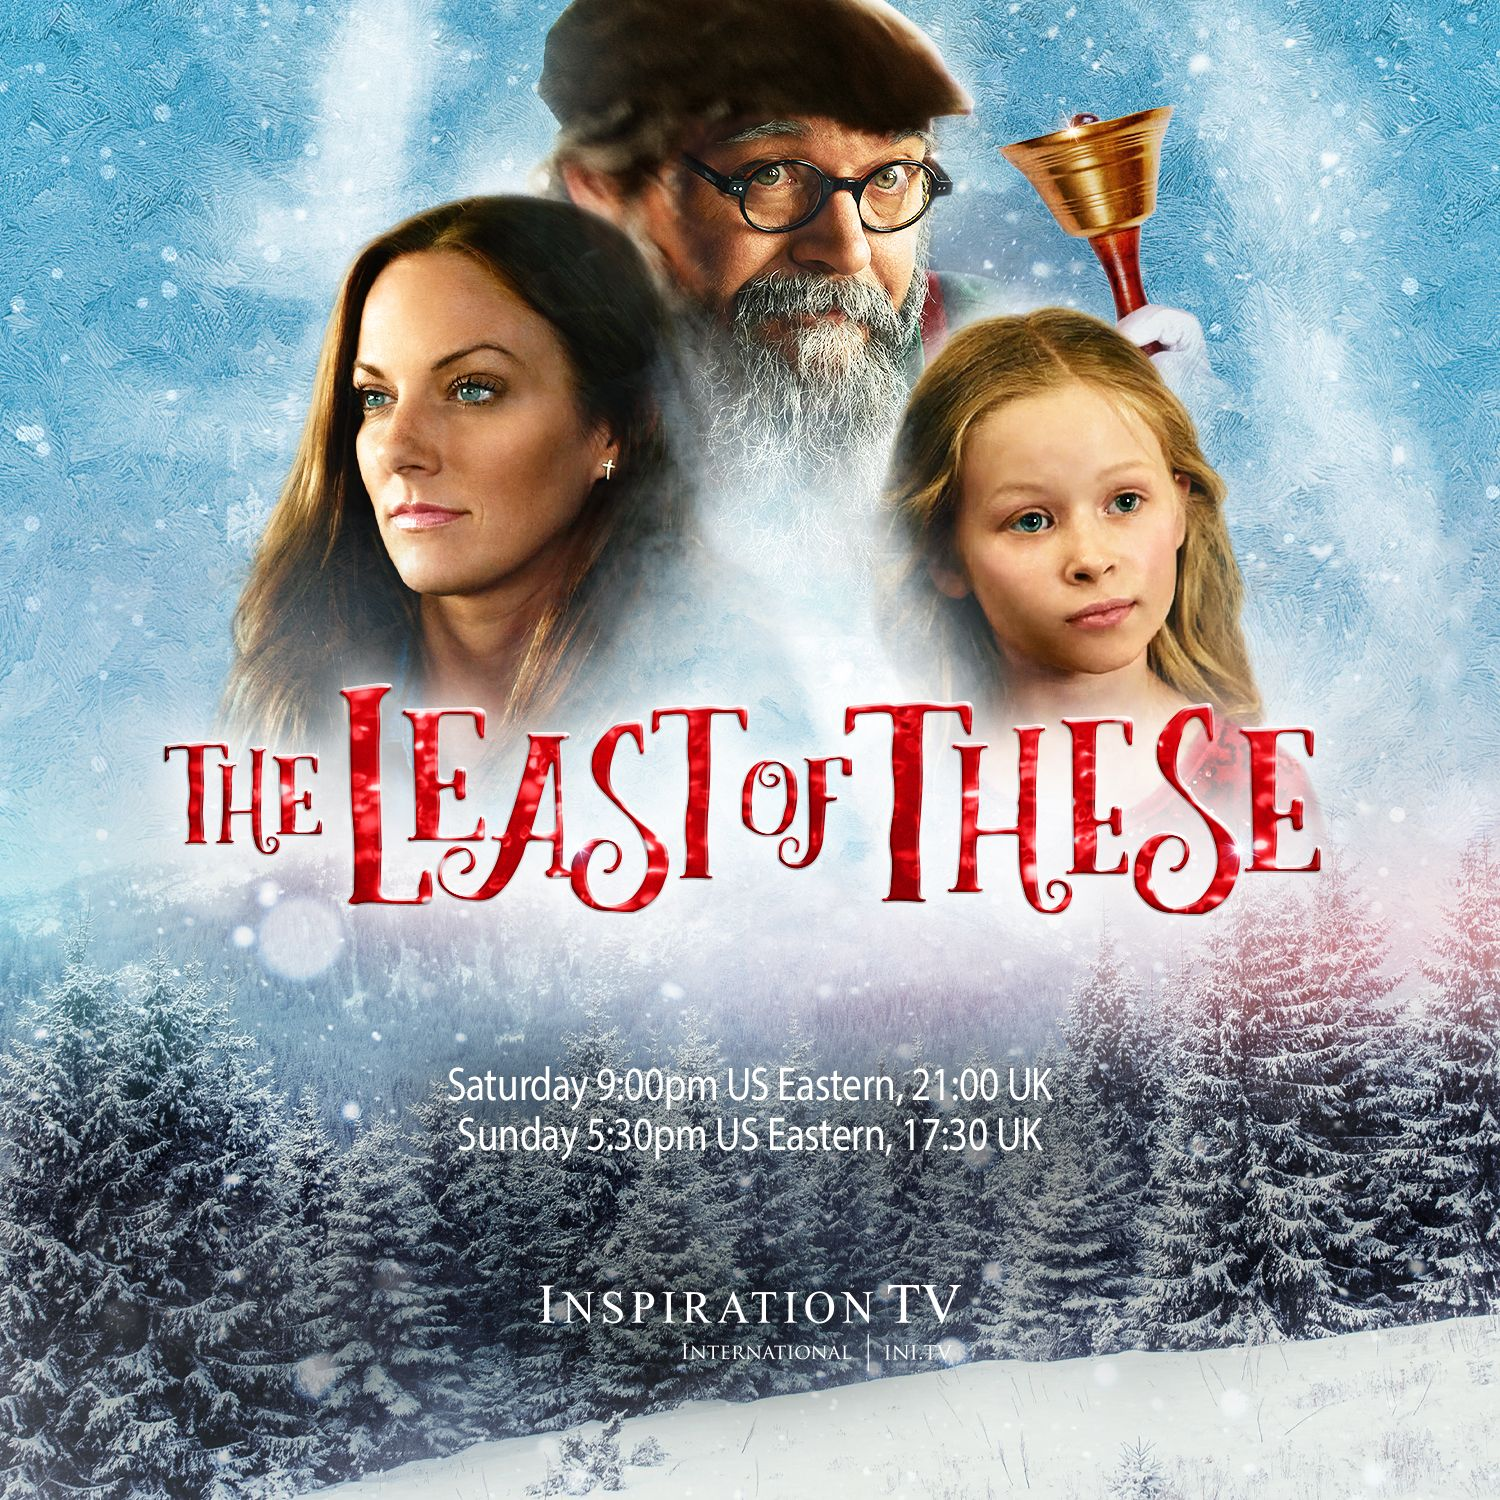 Ready To Watch The Least Of These Right Now No Problem Click Ini Tv Believe To Sign Up For Your Free Inspiration On Demand Accoun Christmas Movies Inspiration Watch Christmas Movies